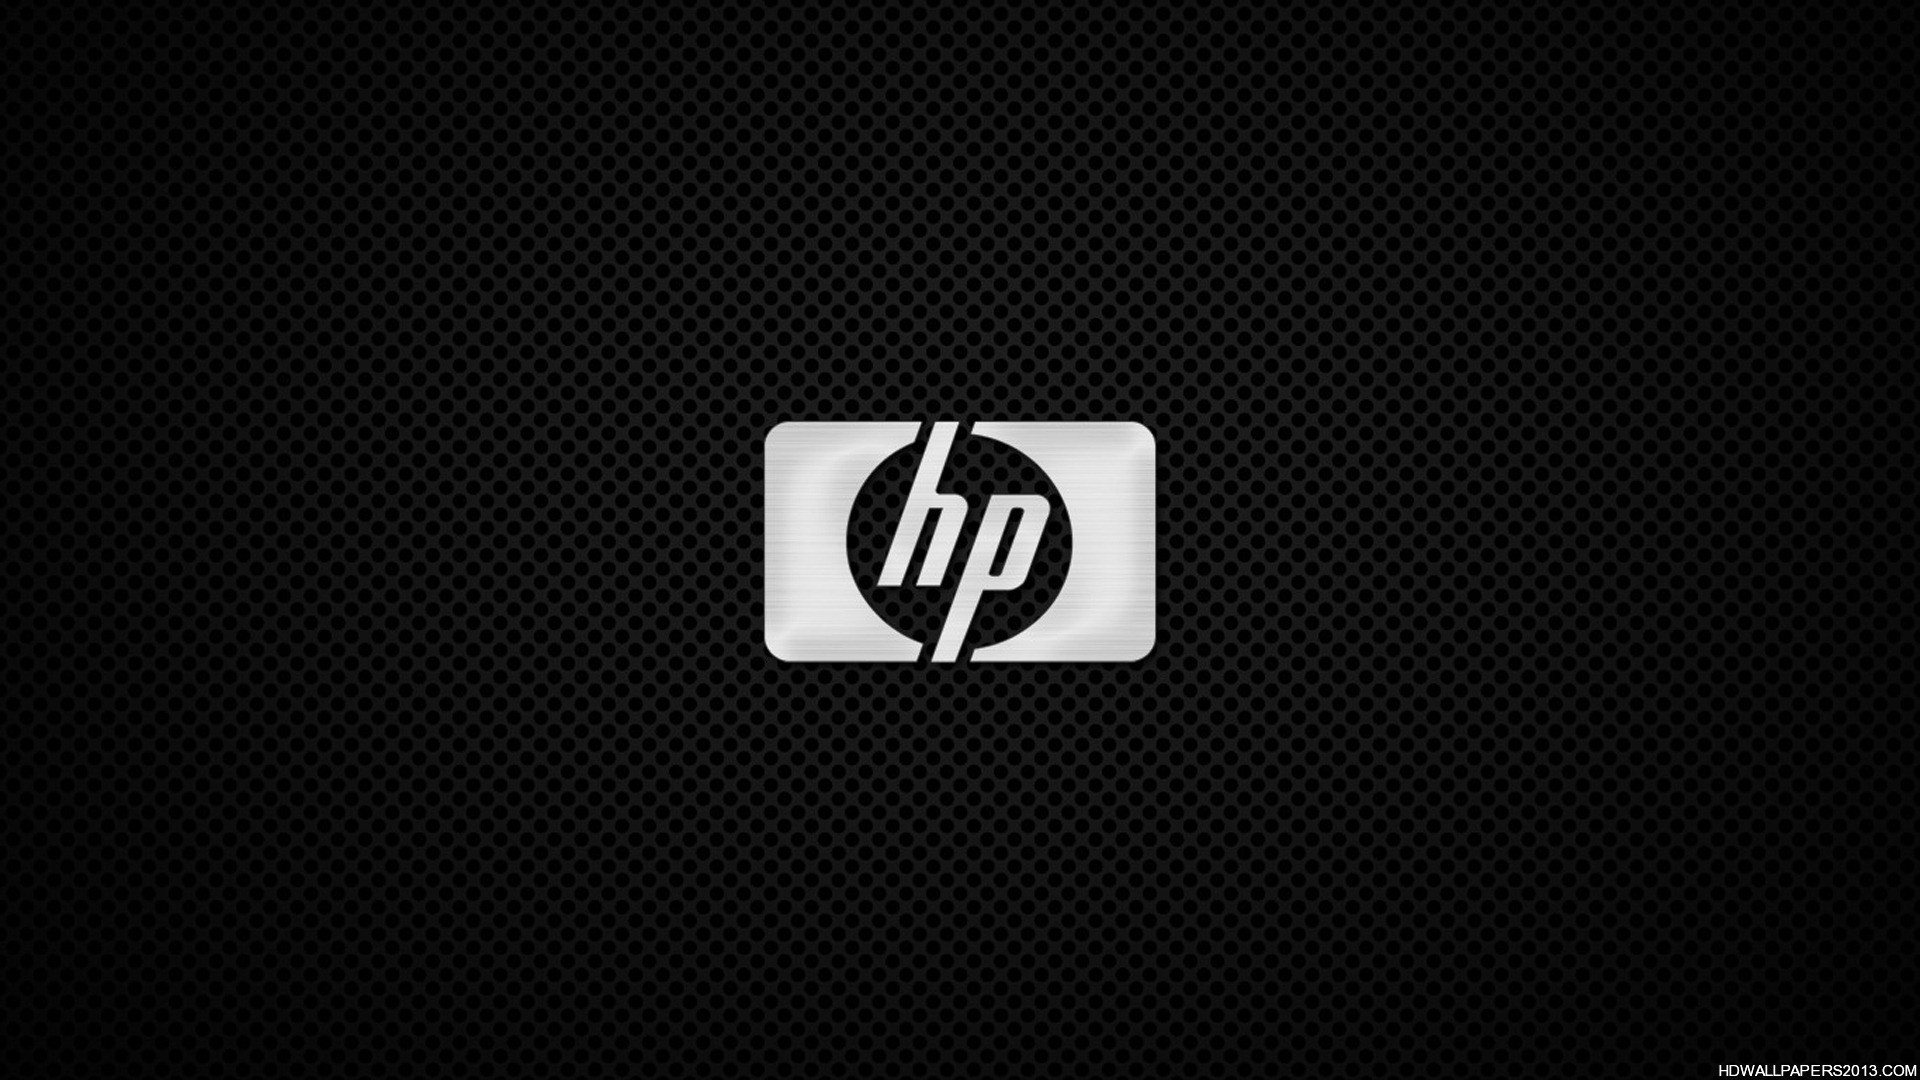 Download image Cool Laptop Wallpapers Hp PC Android iPhone and iPad 1920x1080